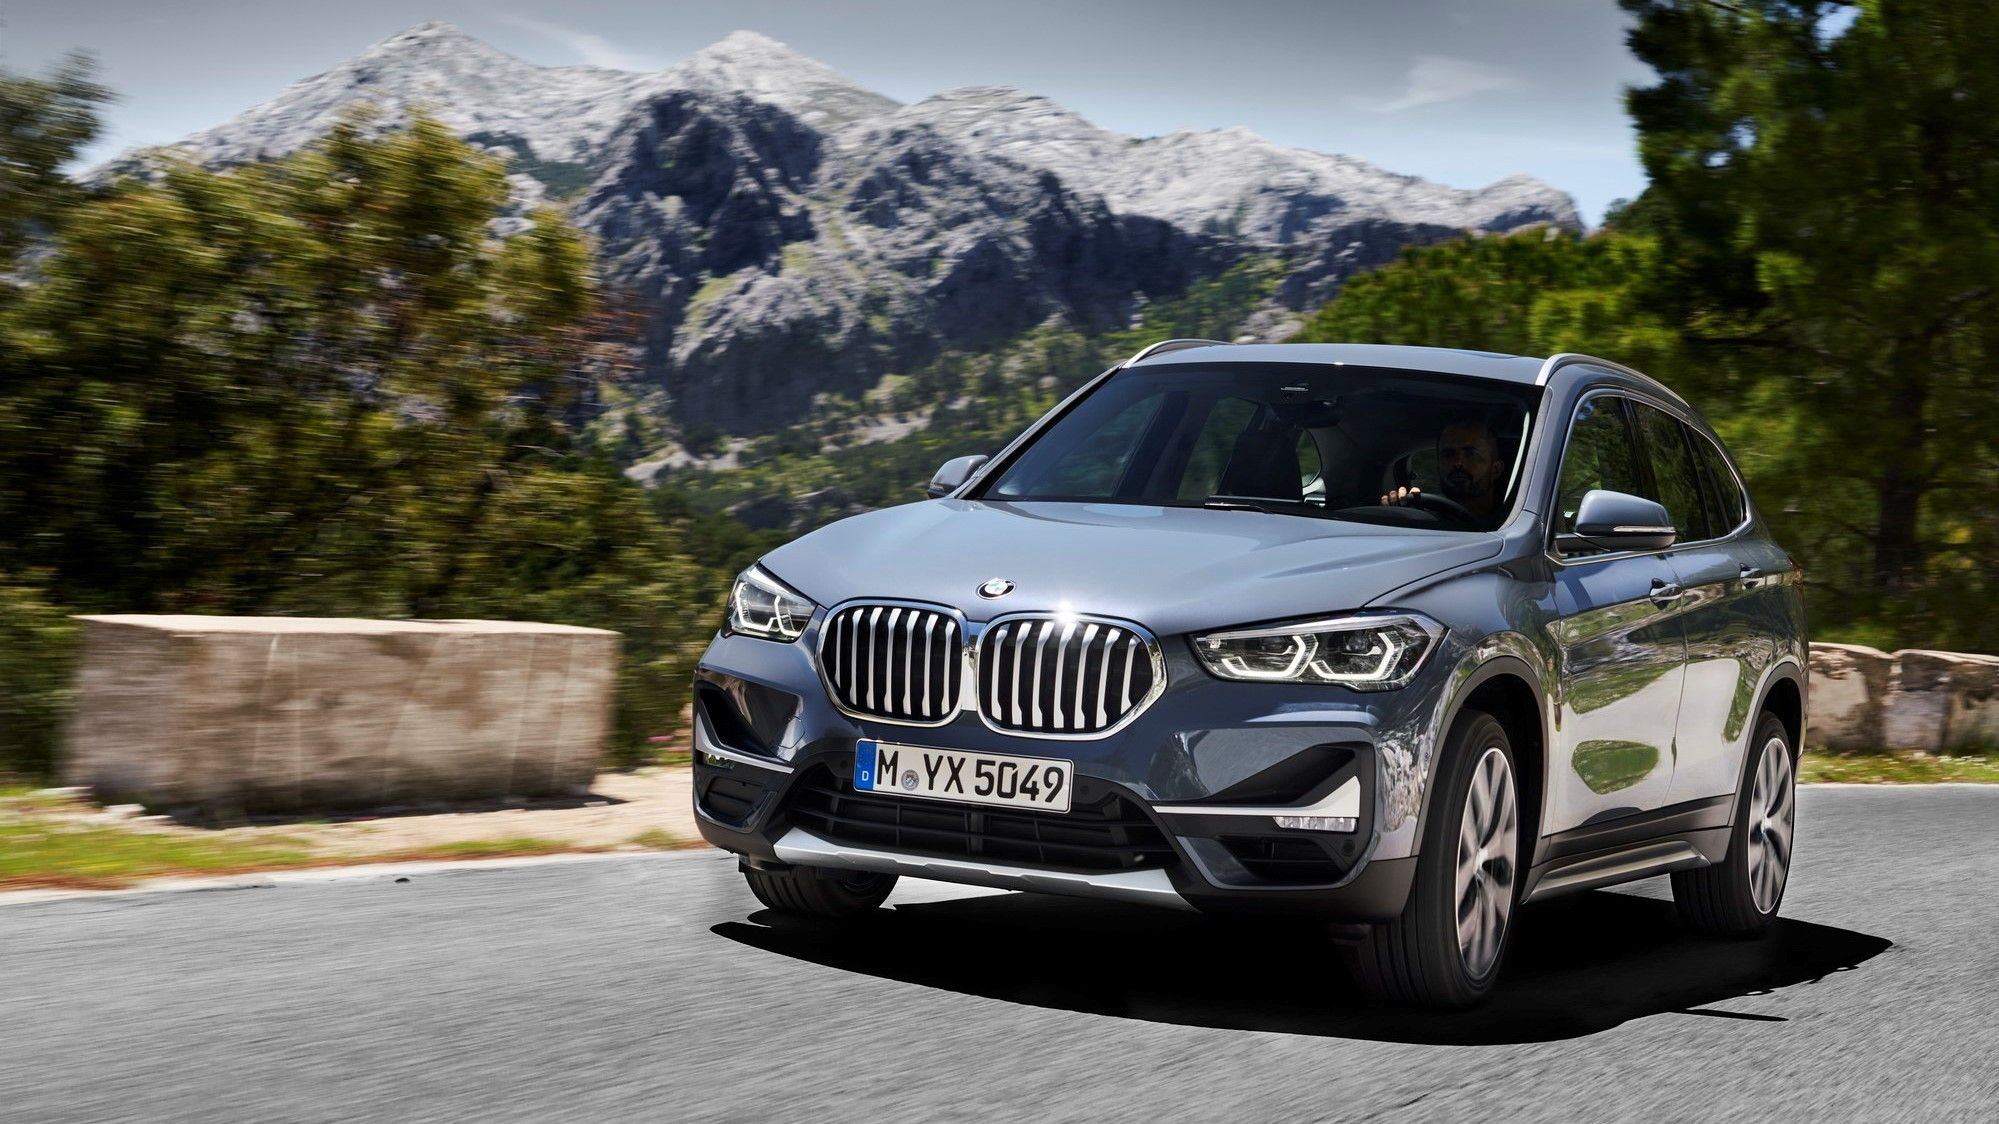 2021 Bmw X1 Review Release Date Trims Performance Towing Capacity Interior And Rivals